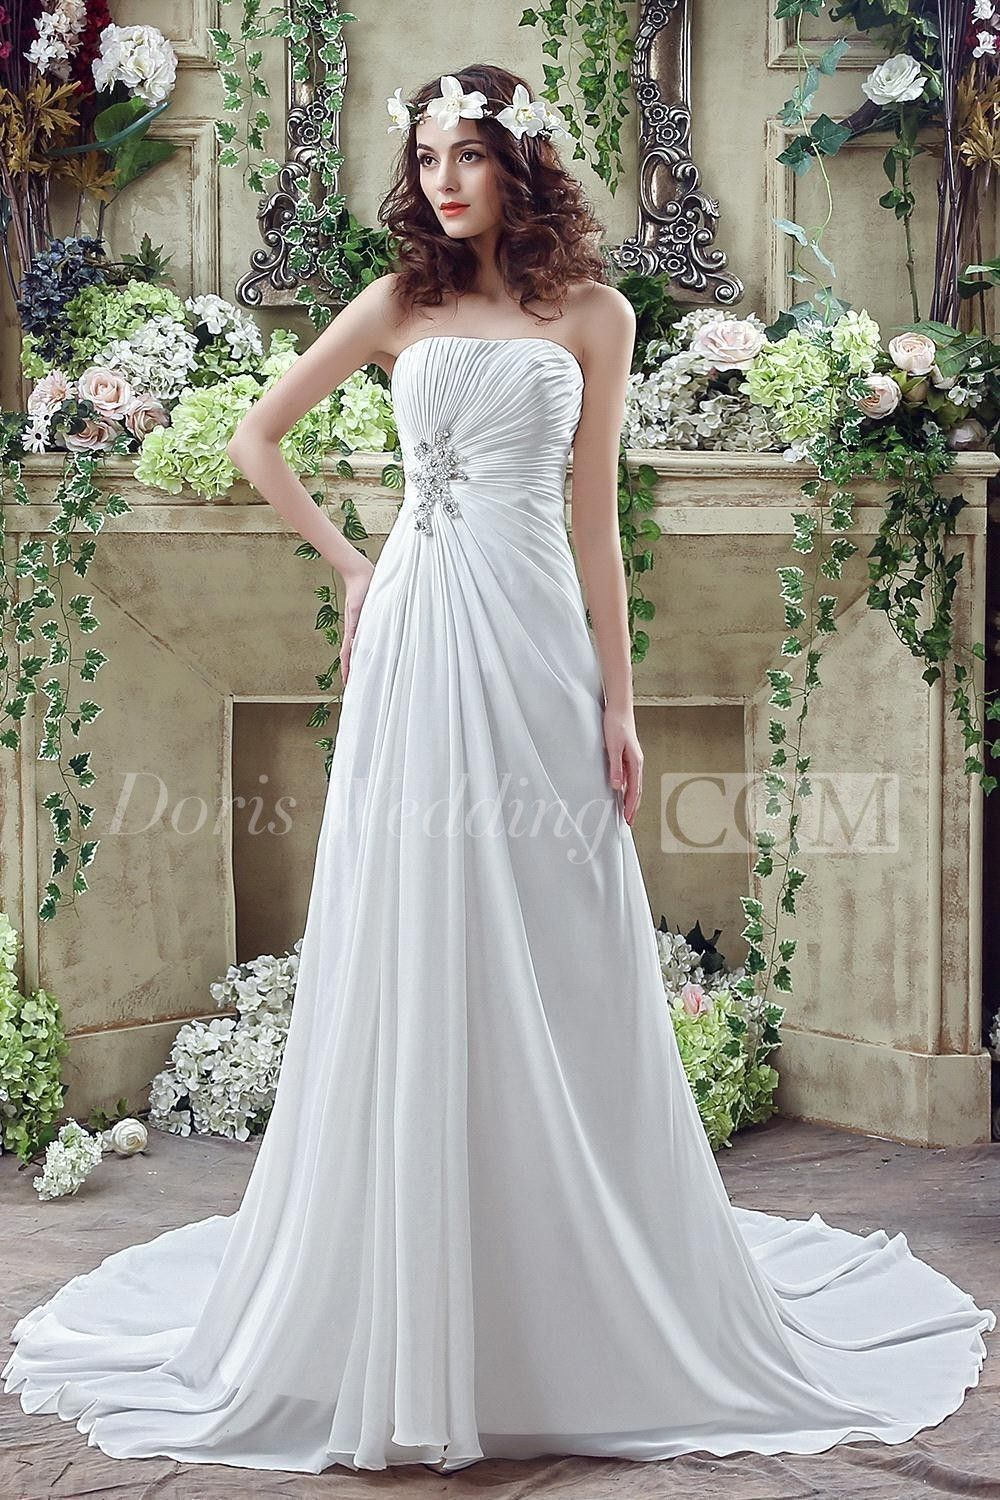 Newest strapless white beadings wedding dress aline sweep